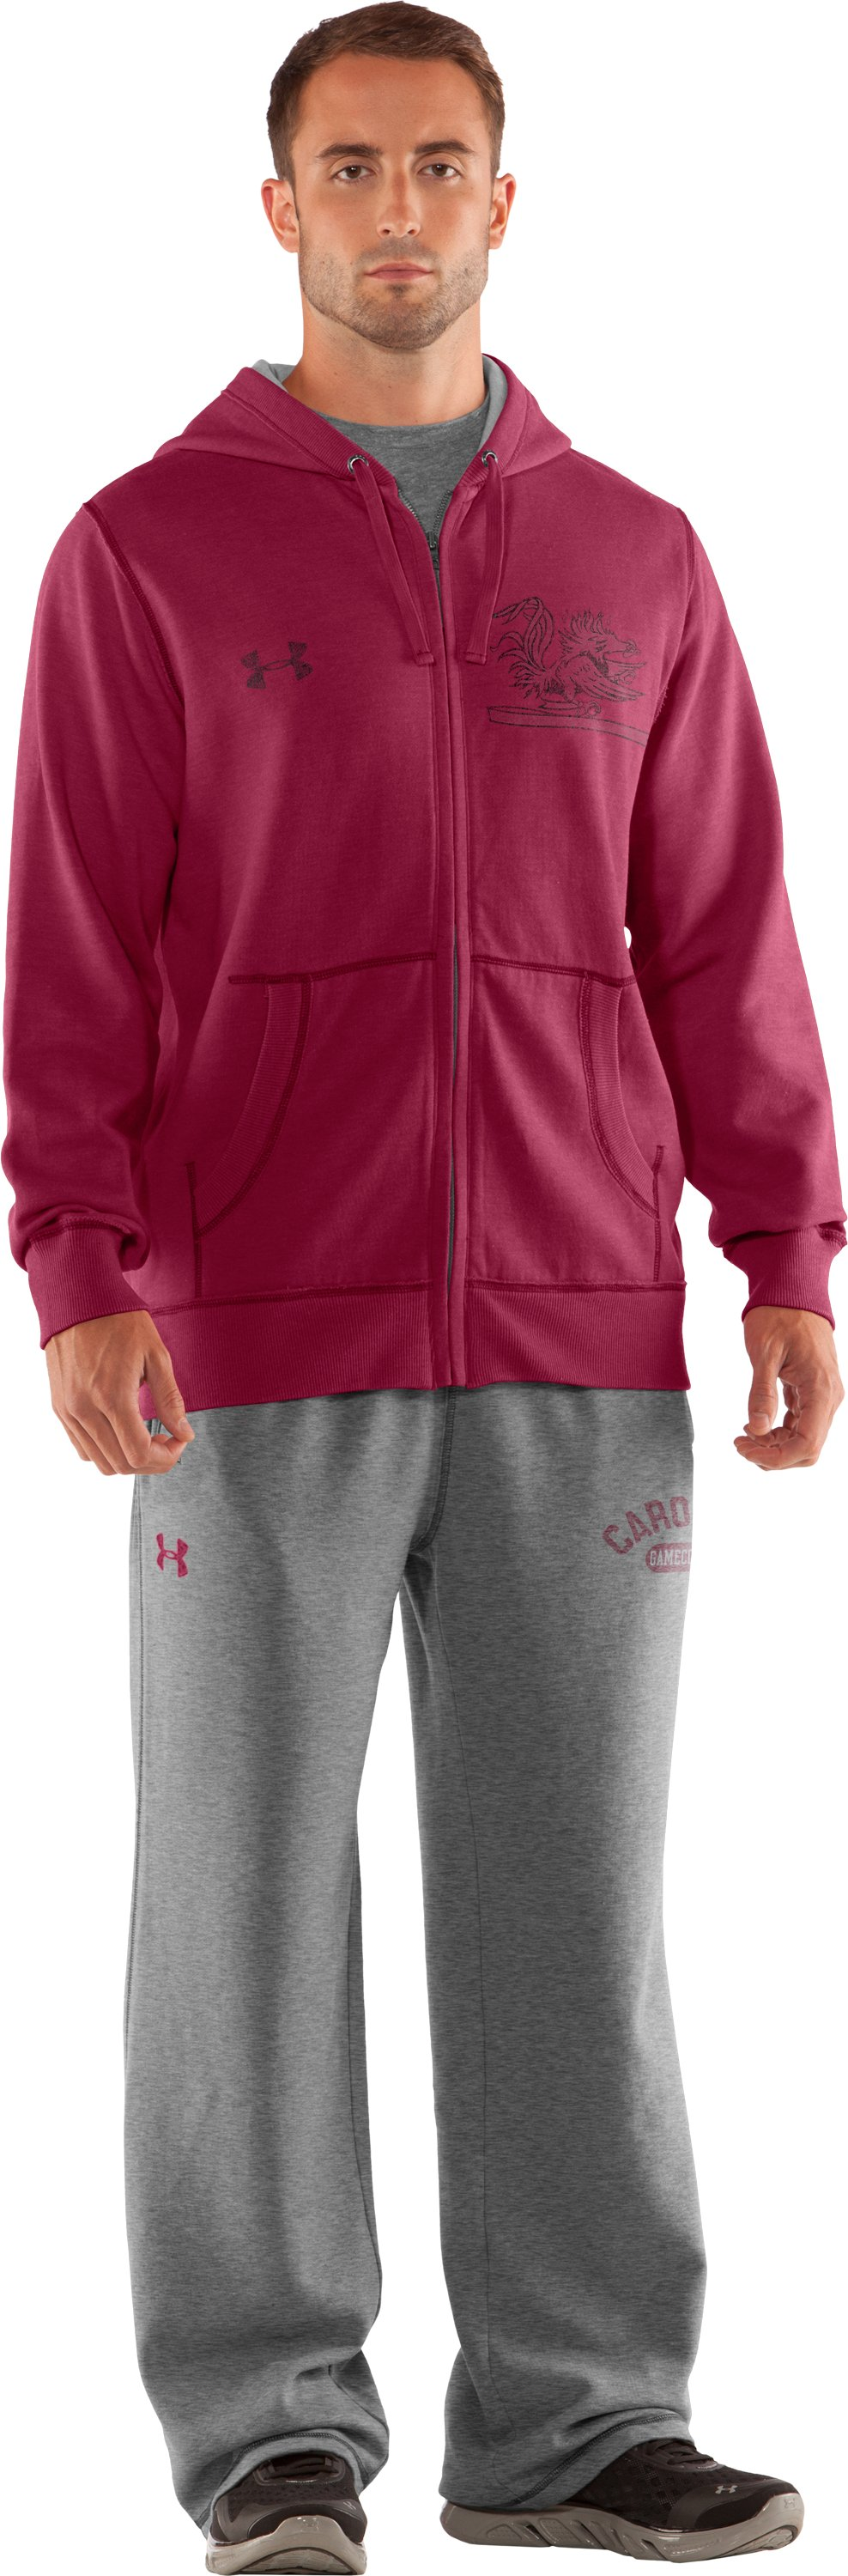 Men's South Carolina Under Armour® Legacy Hoodie, Cardinal